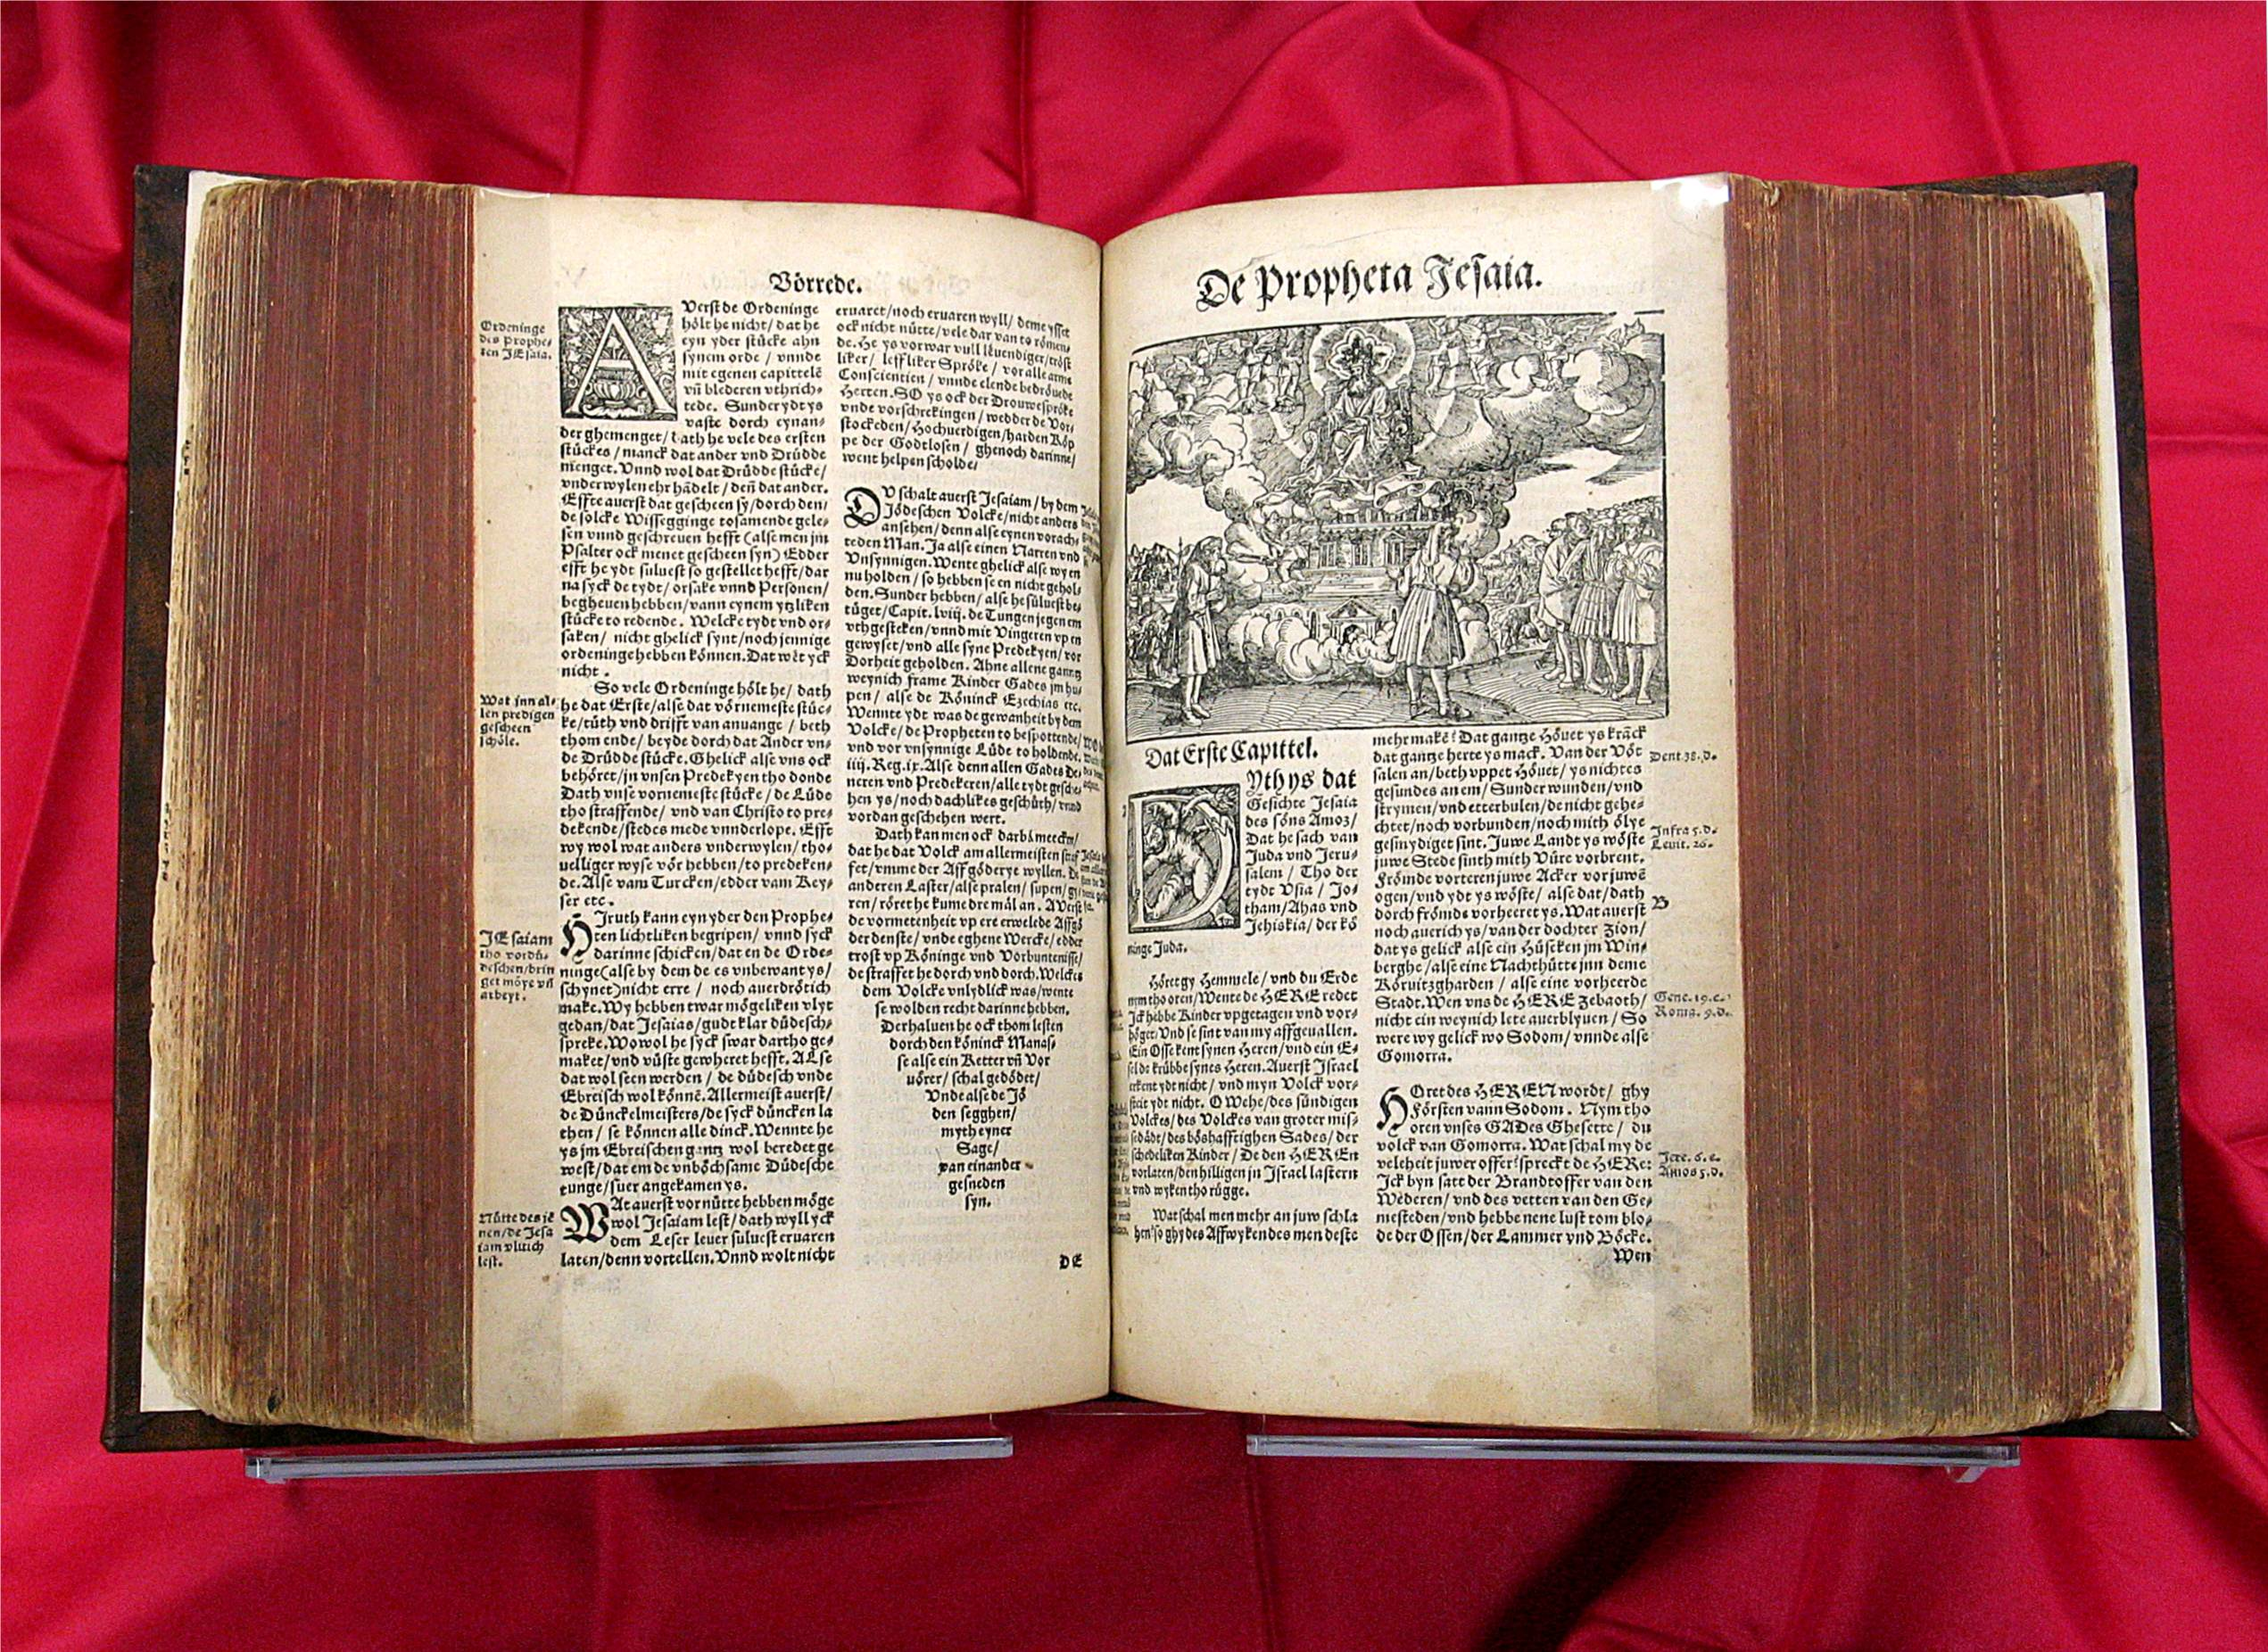 Fig. 17: Luther Bible, 1545. Source: http://library.dts.edu/Pages/TL/Special/sc_bibles.shtml